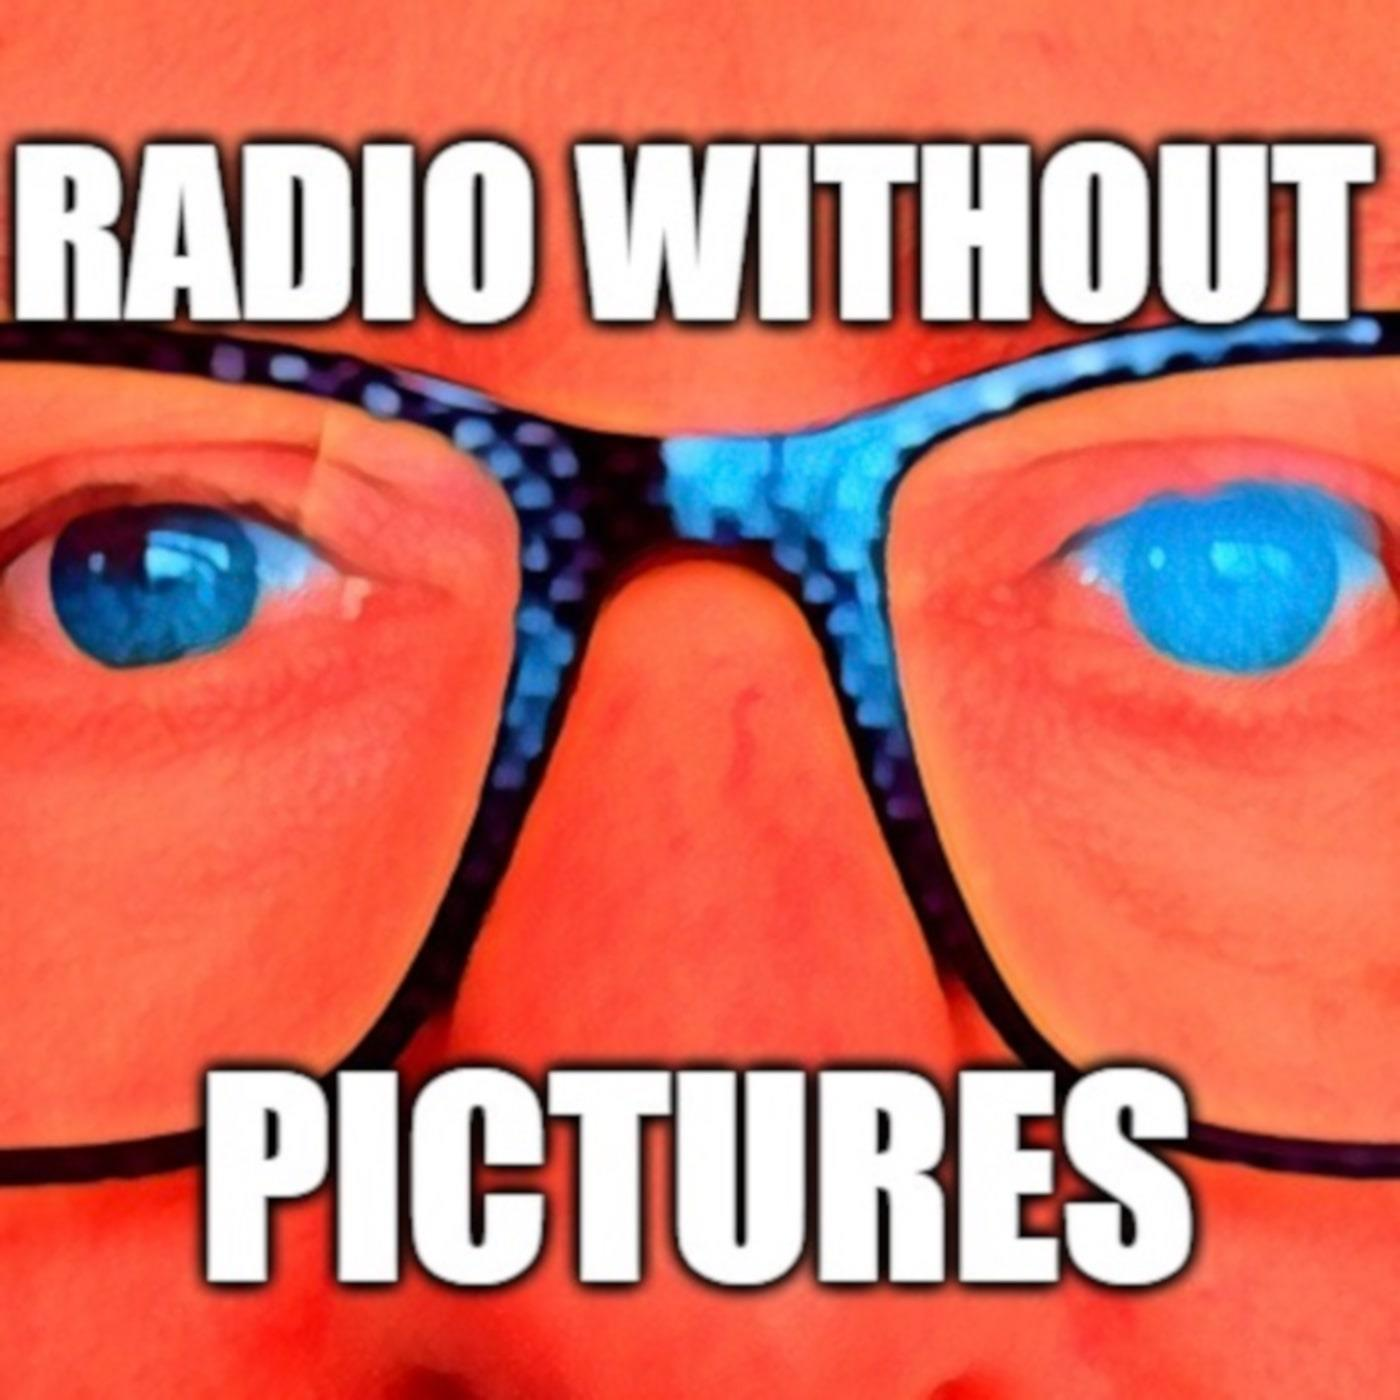 Radio Without Pictures - Darren Ludlow-28-01-2021